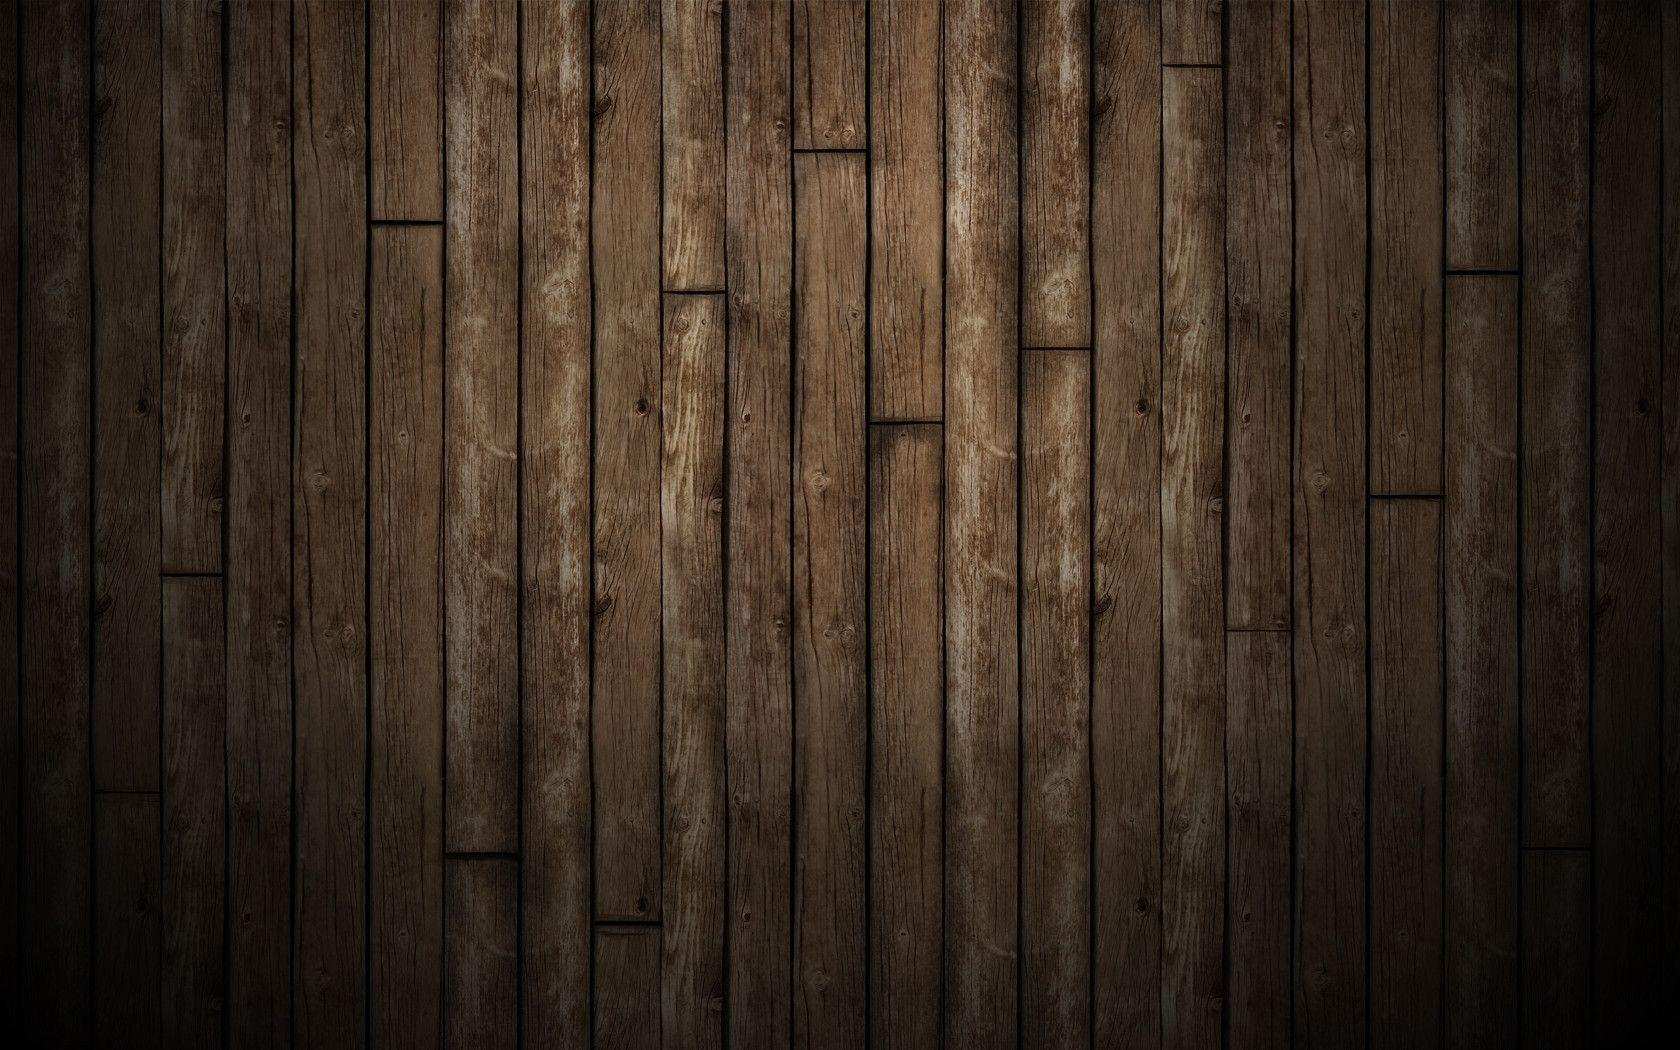 Wooden Desktop Wood Desktop Wallpapers Wallpaper Cave